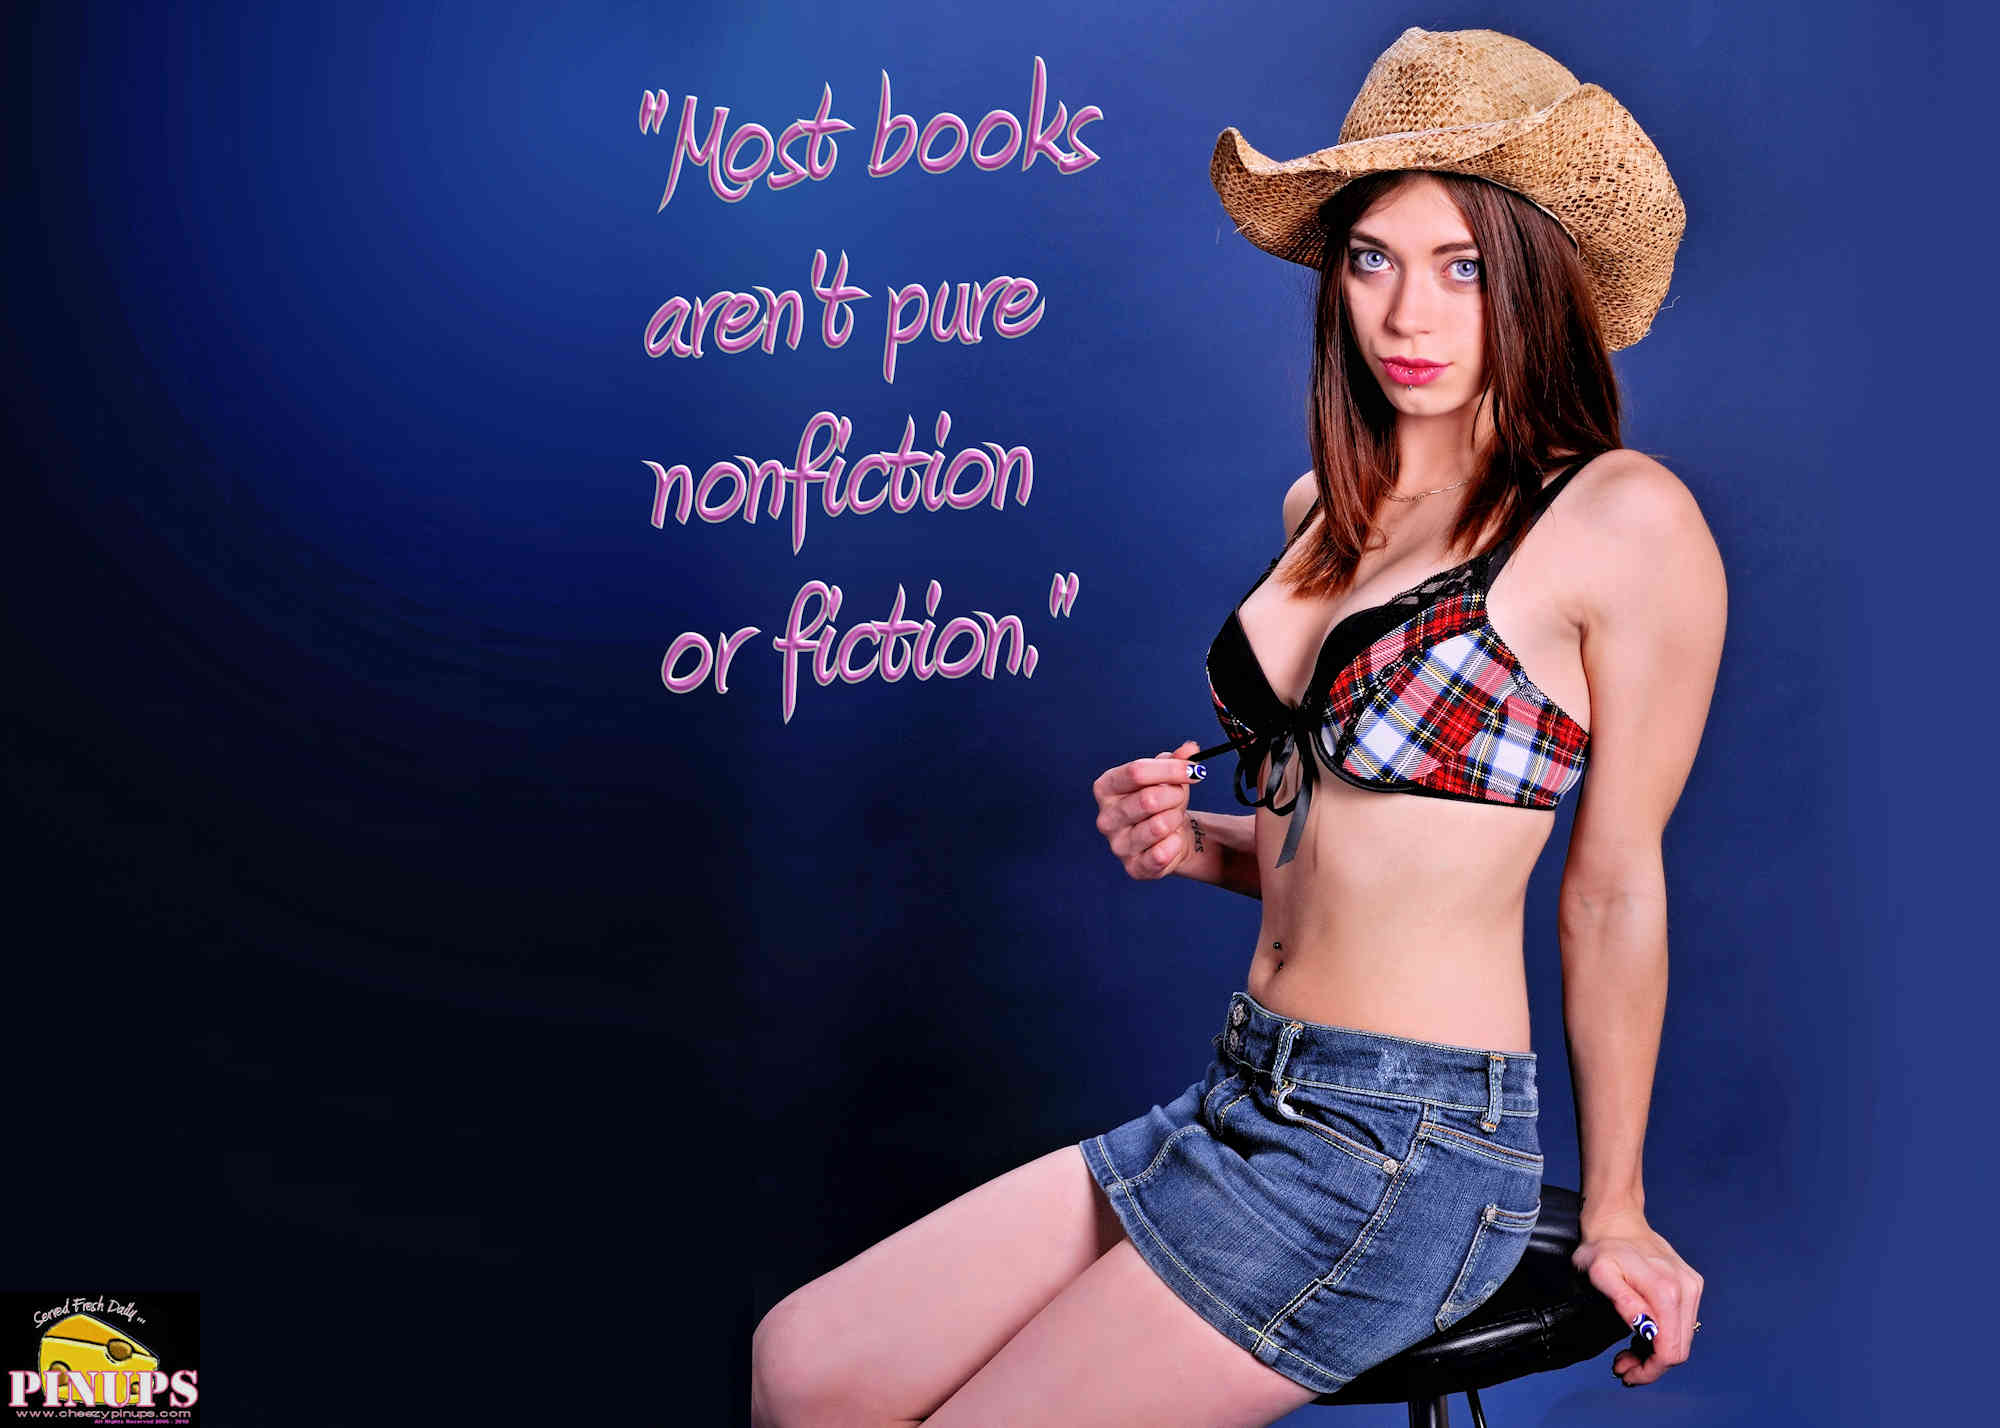 "Cheezy Pinup - September 12, 2018   ""Most books aren't pure nonfiction or fiction."" - James Frey Model: Meaghan"